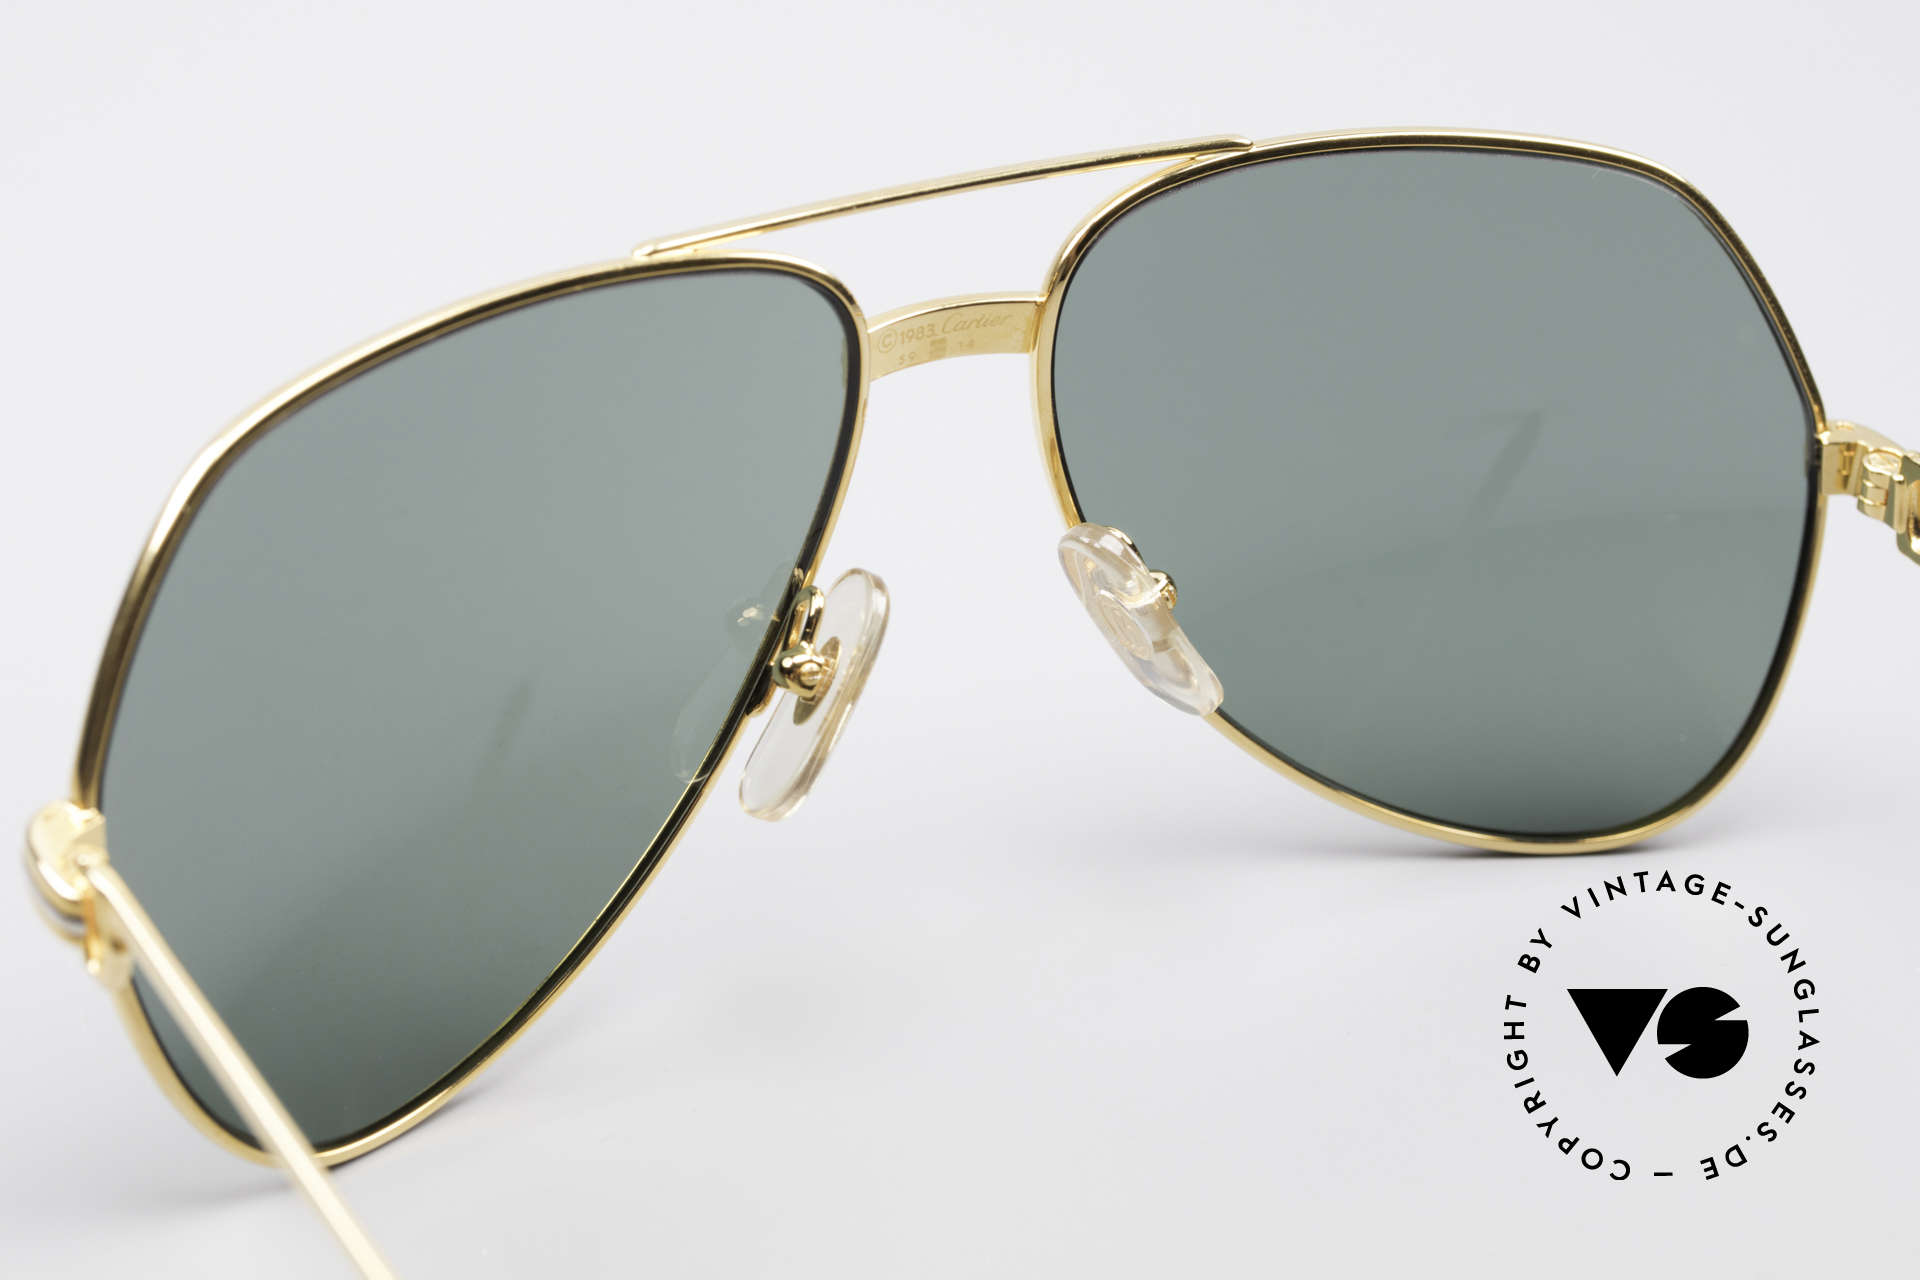 Cartier Vendome LC - M David Bowie Sunglasses, unworn rarity: hard to find in this condition, these days, Made for Men